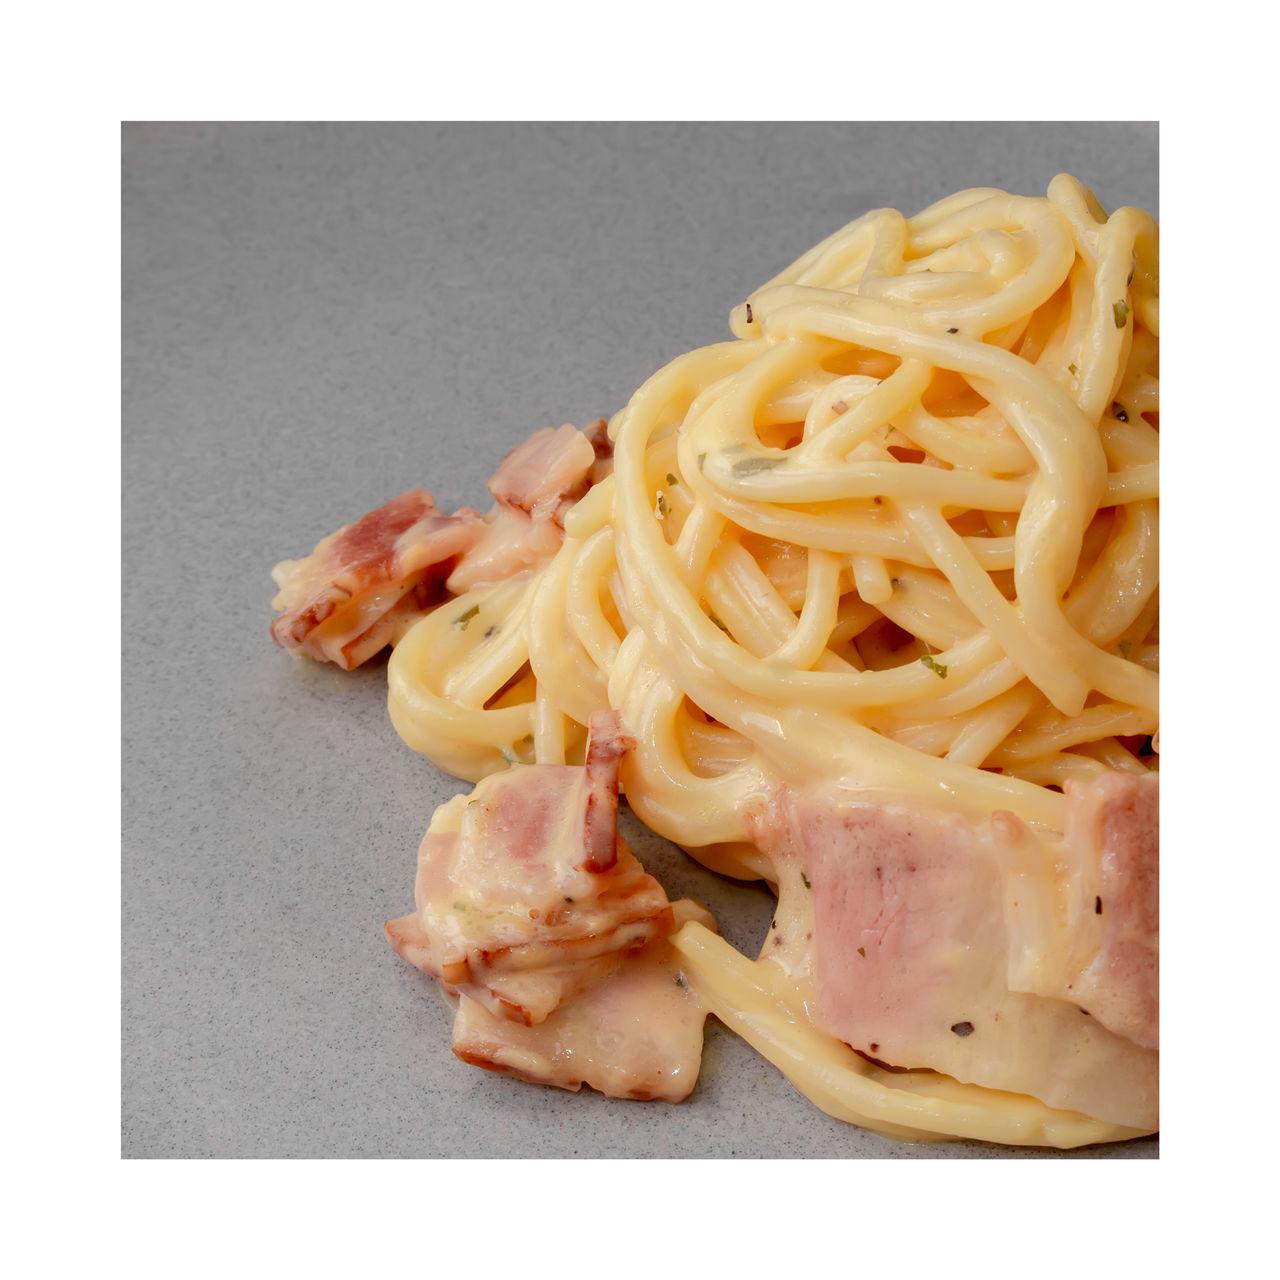 HIGH ANGLE VIEW OF PASTA WITH MEAT AND FORK